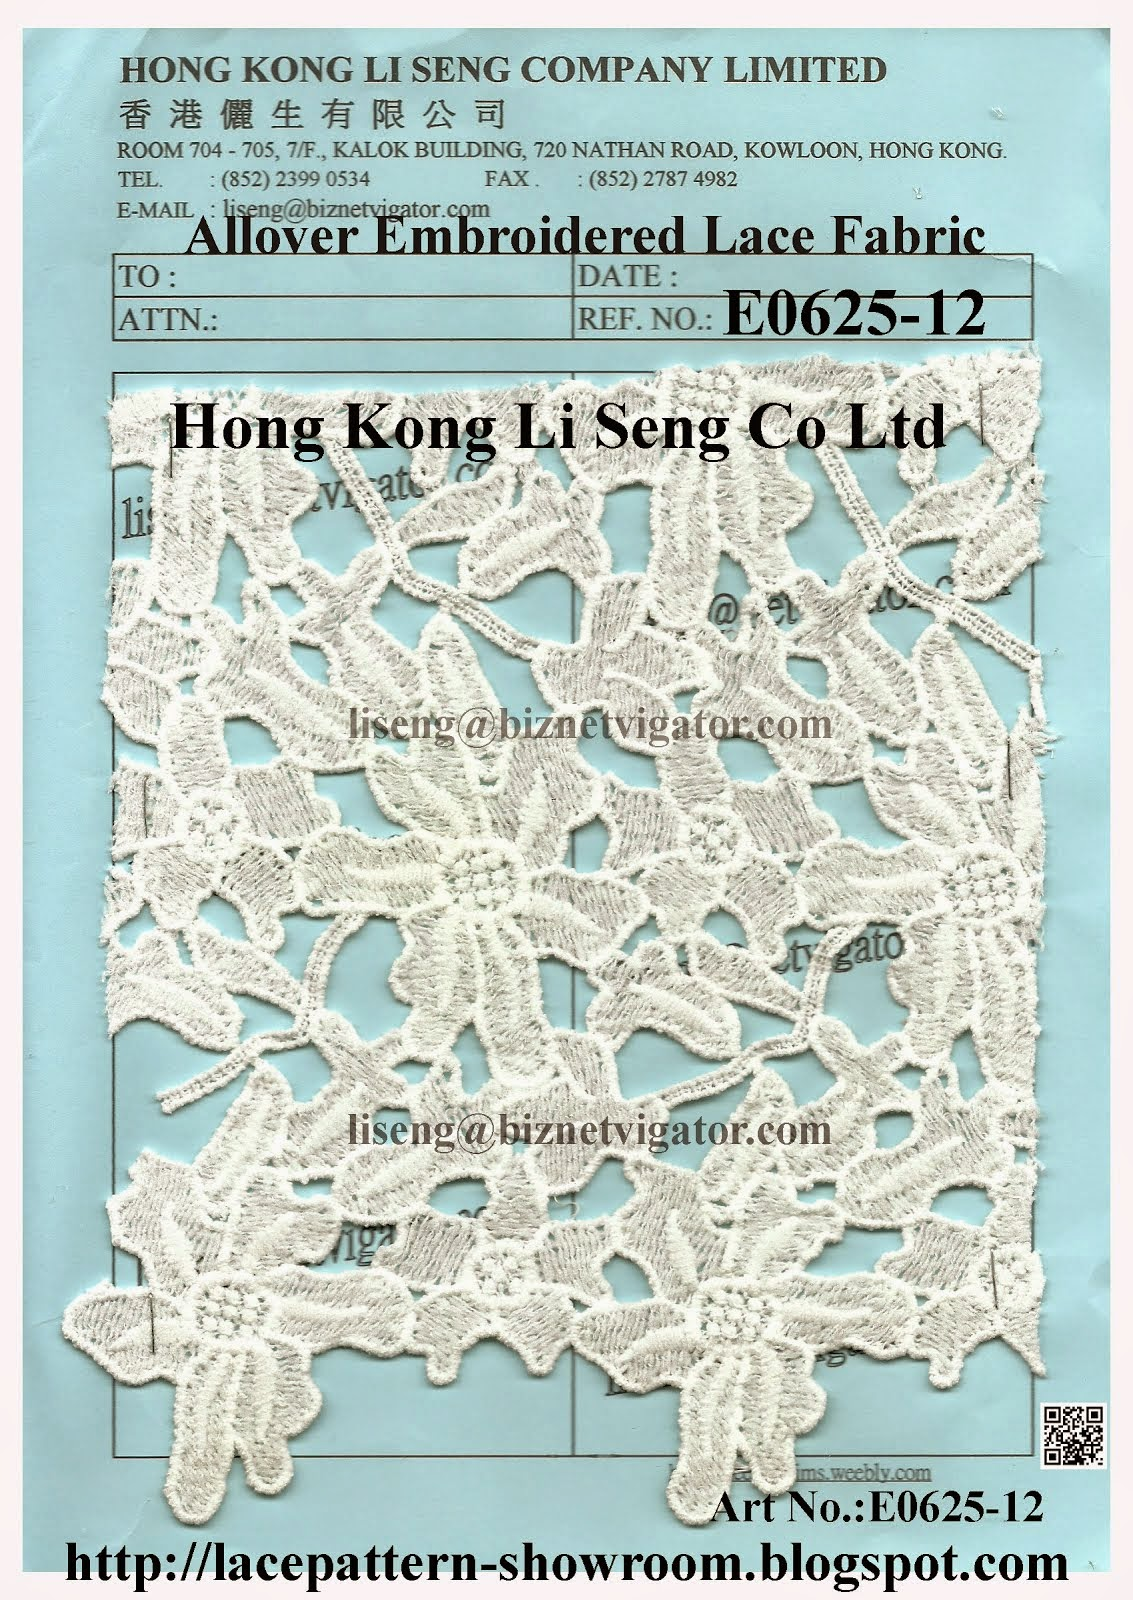 Allover Lace Fabric Wholesale Manufacturer Supplier - Hong Kong Li Seng Co Ltd